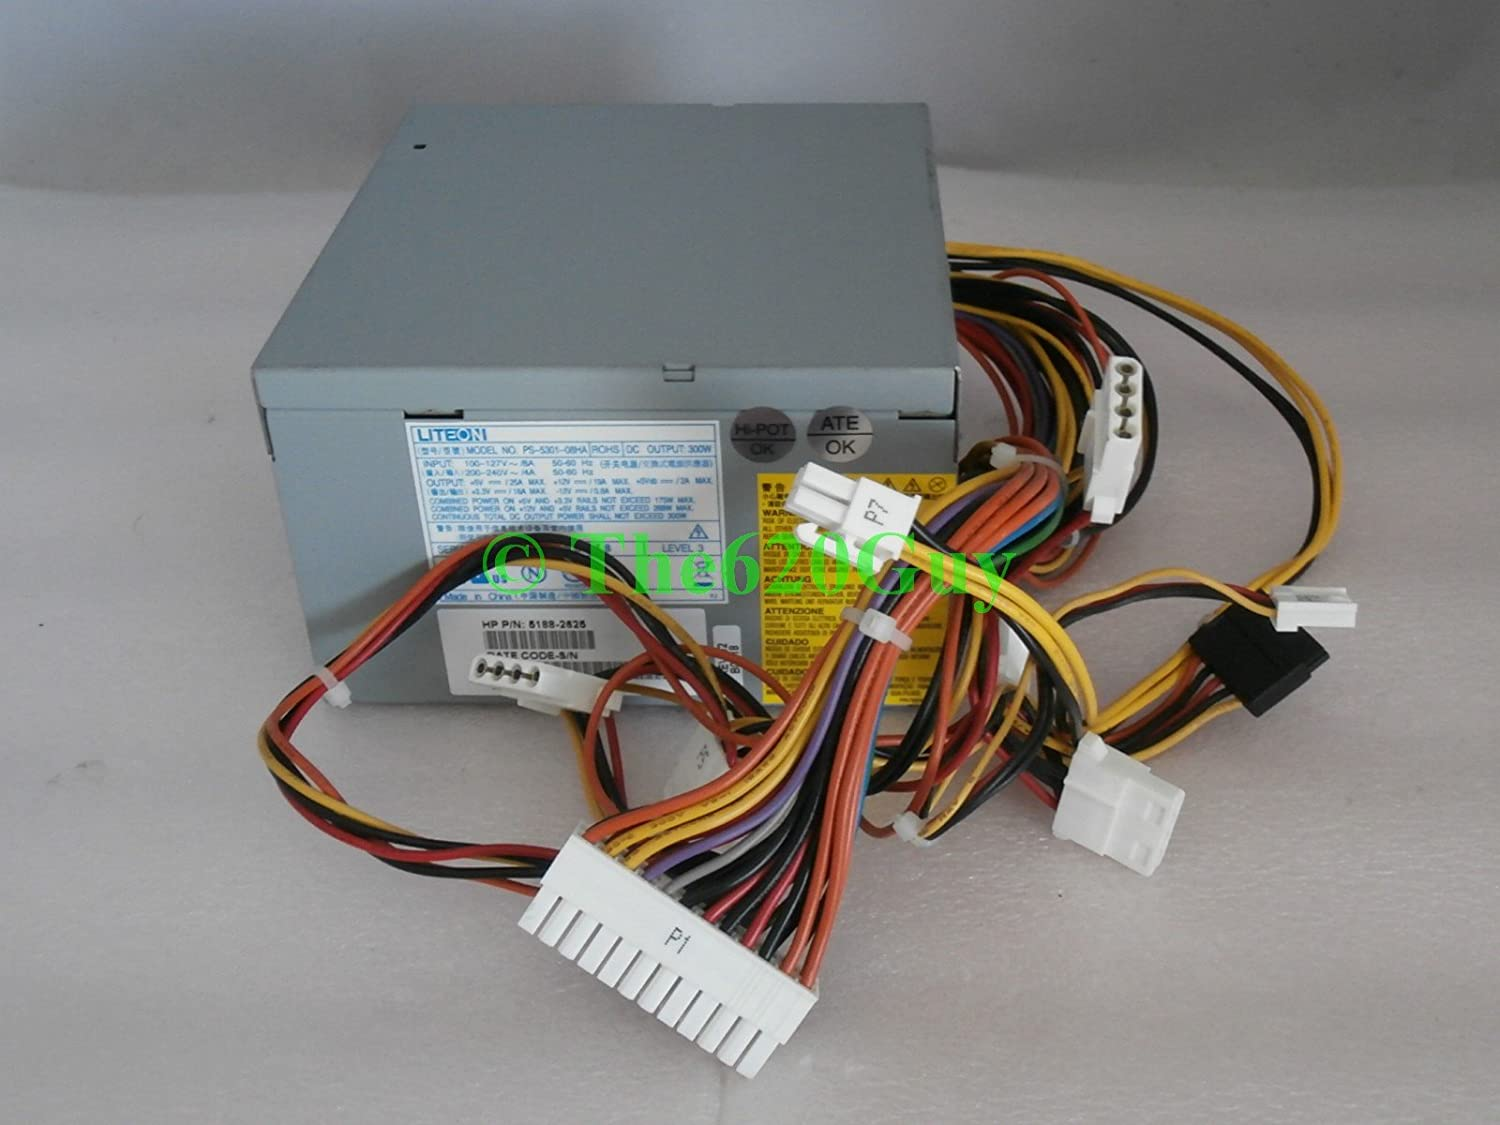 HP Genuine Compaq 300W ATX Power Supply 5188-2625 Lite-On PS-5301-08HA 5187-6114